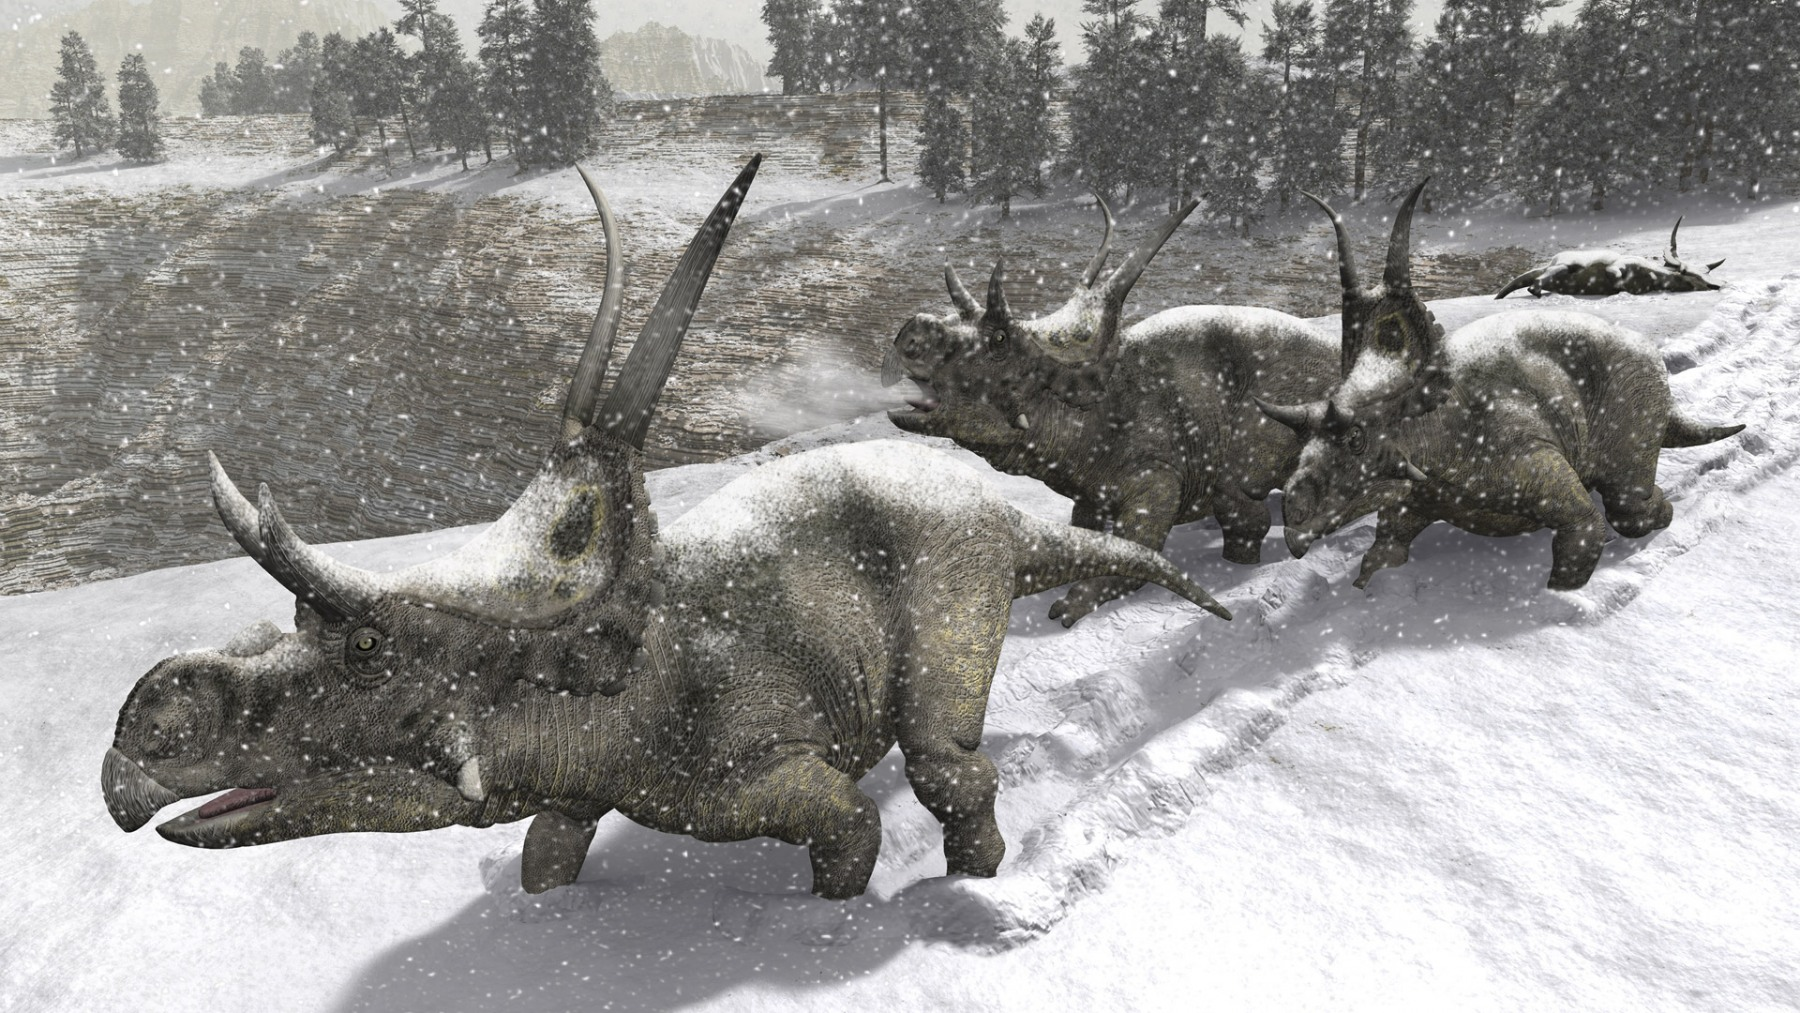 DIABLOCERATOPS IN THE SNOW